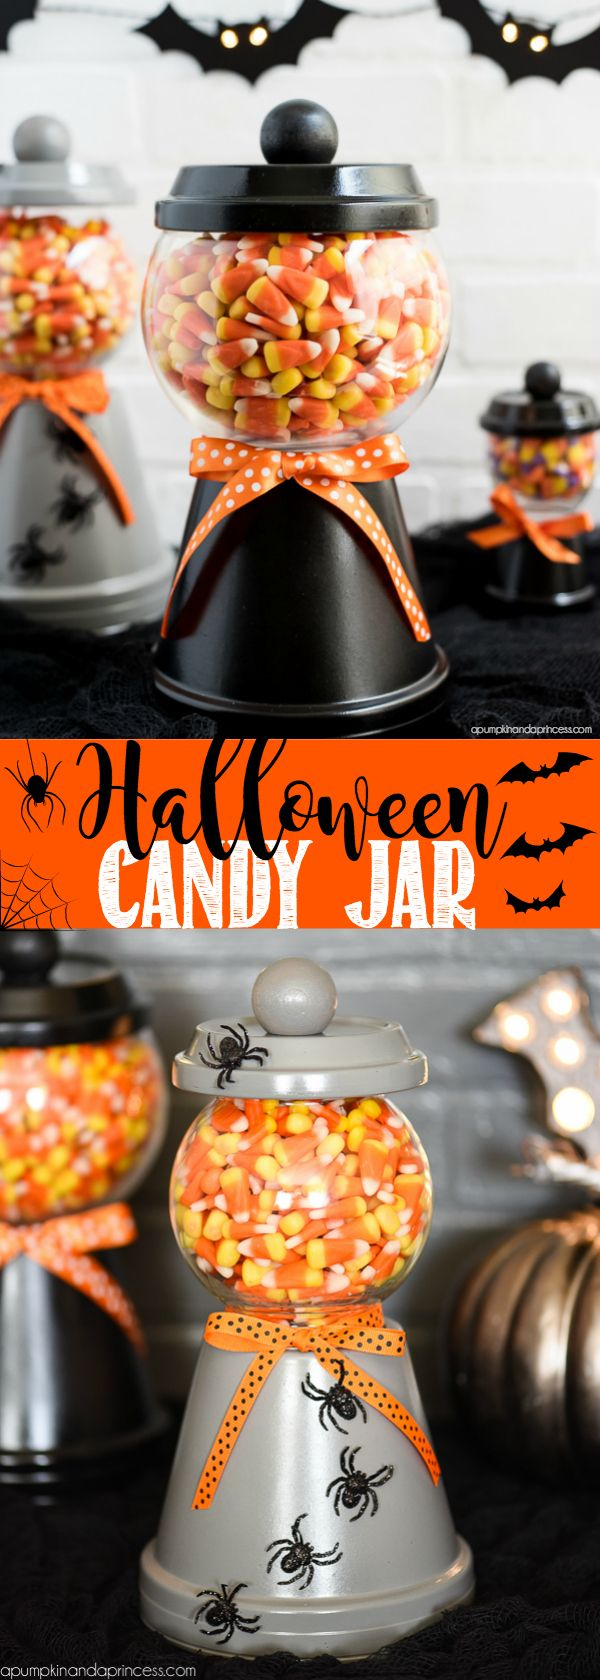 Office halloween decorations ideas - How To Make A Halloween Candy Jar Made Out Of A Terra Cotta Pot Saucer